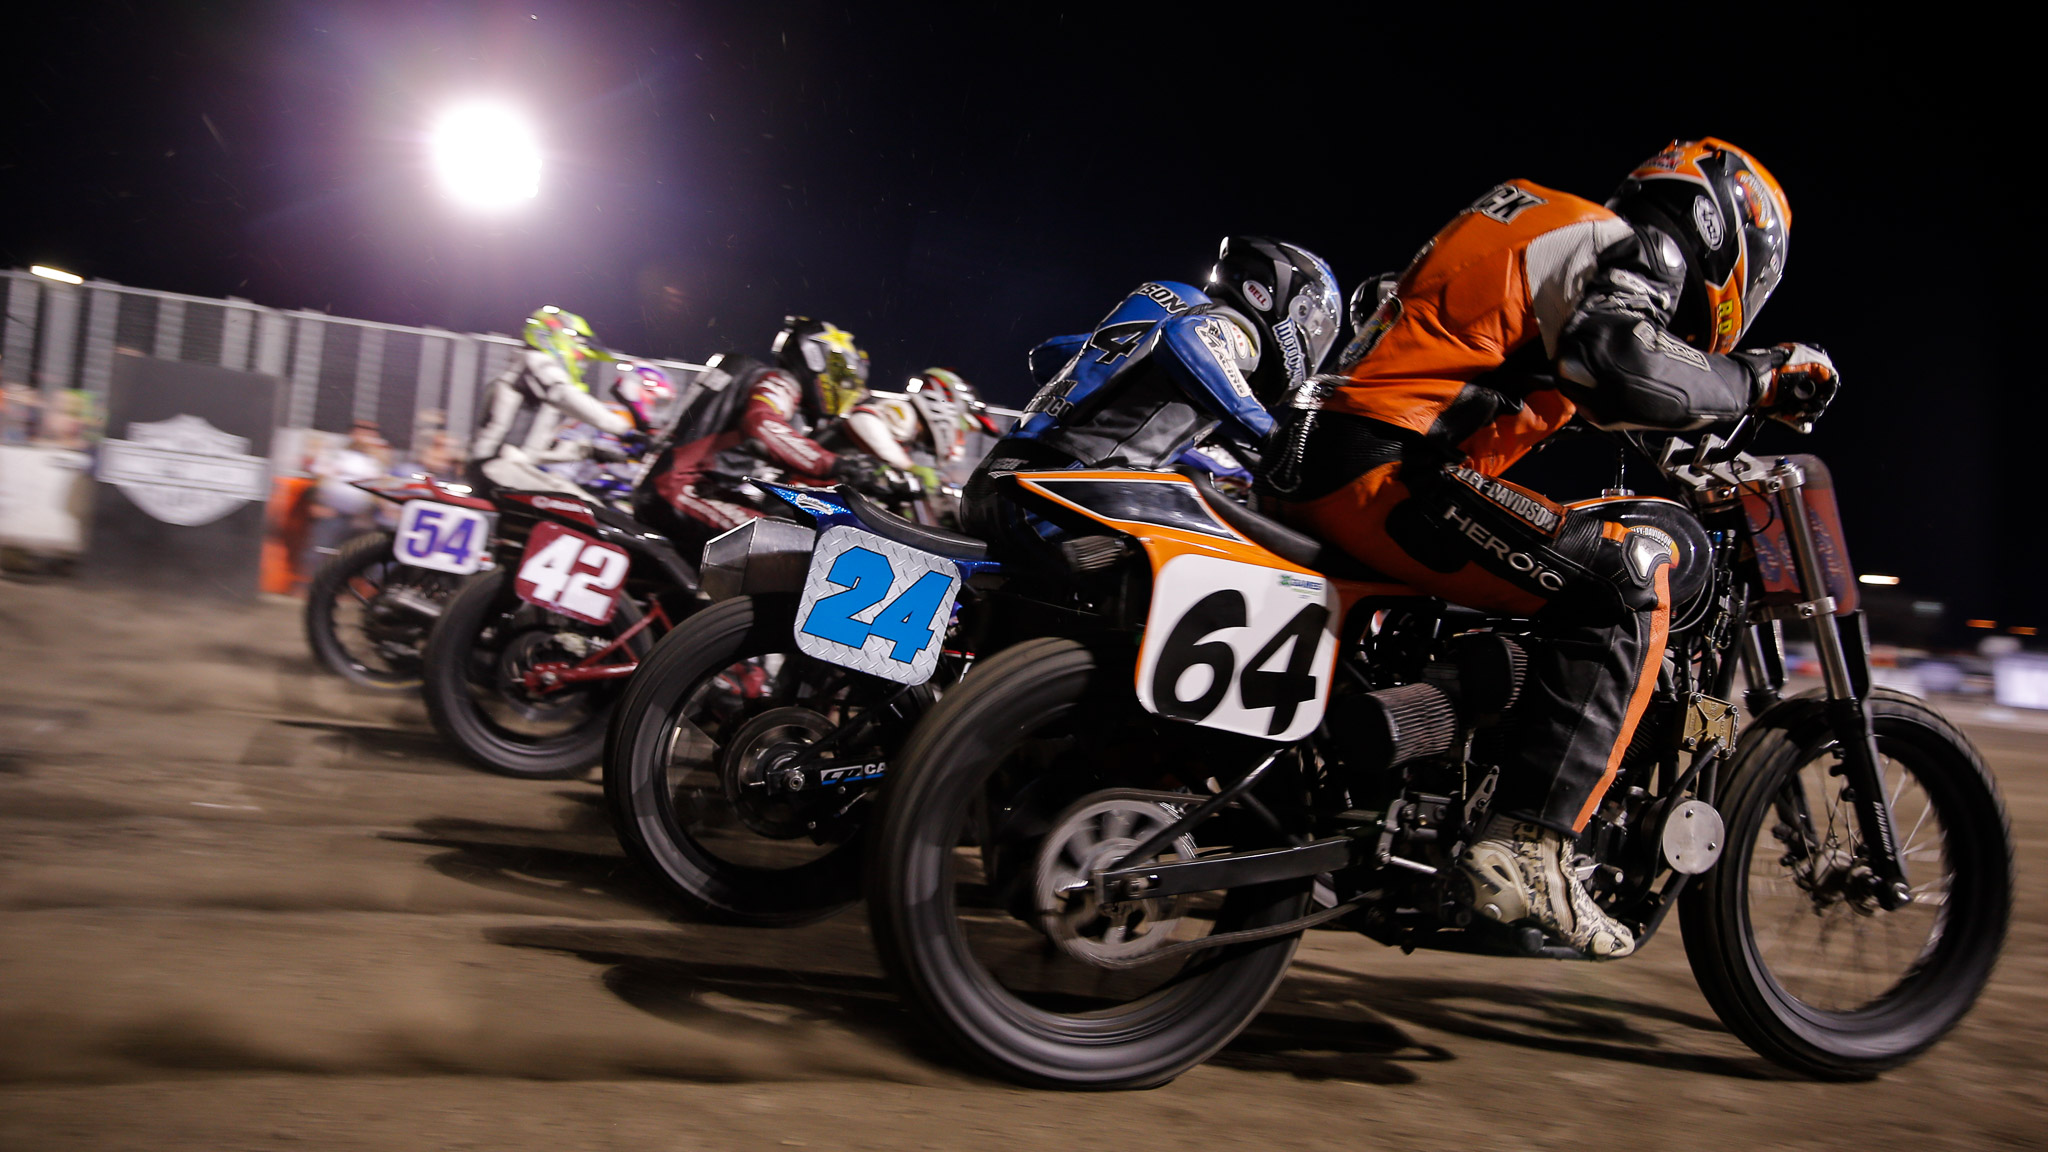 X Games kicked off the first of four days in its new summer home of Minneapolis on Thursday with a bonanza of events, starting with skateboarding and finishing with Harley-Davidson Flat Track Racing, in which Sammy Halbert (No. 69, not pictured) took the win.